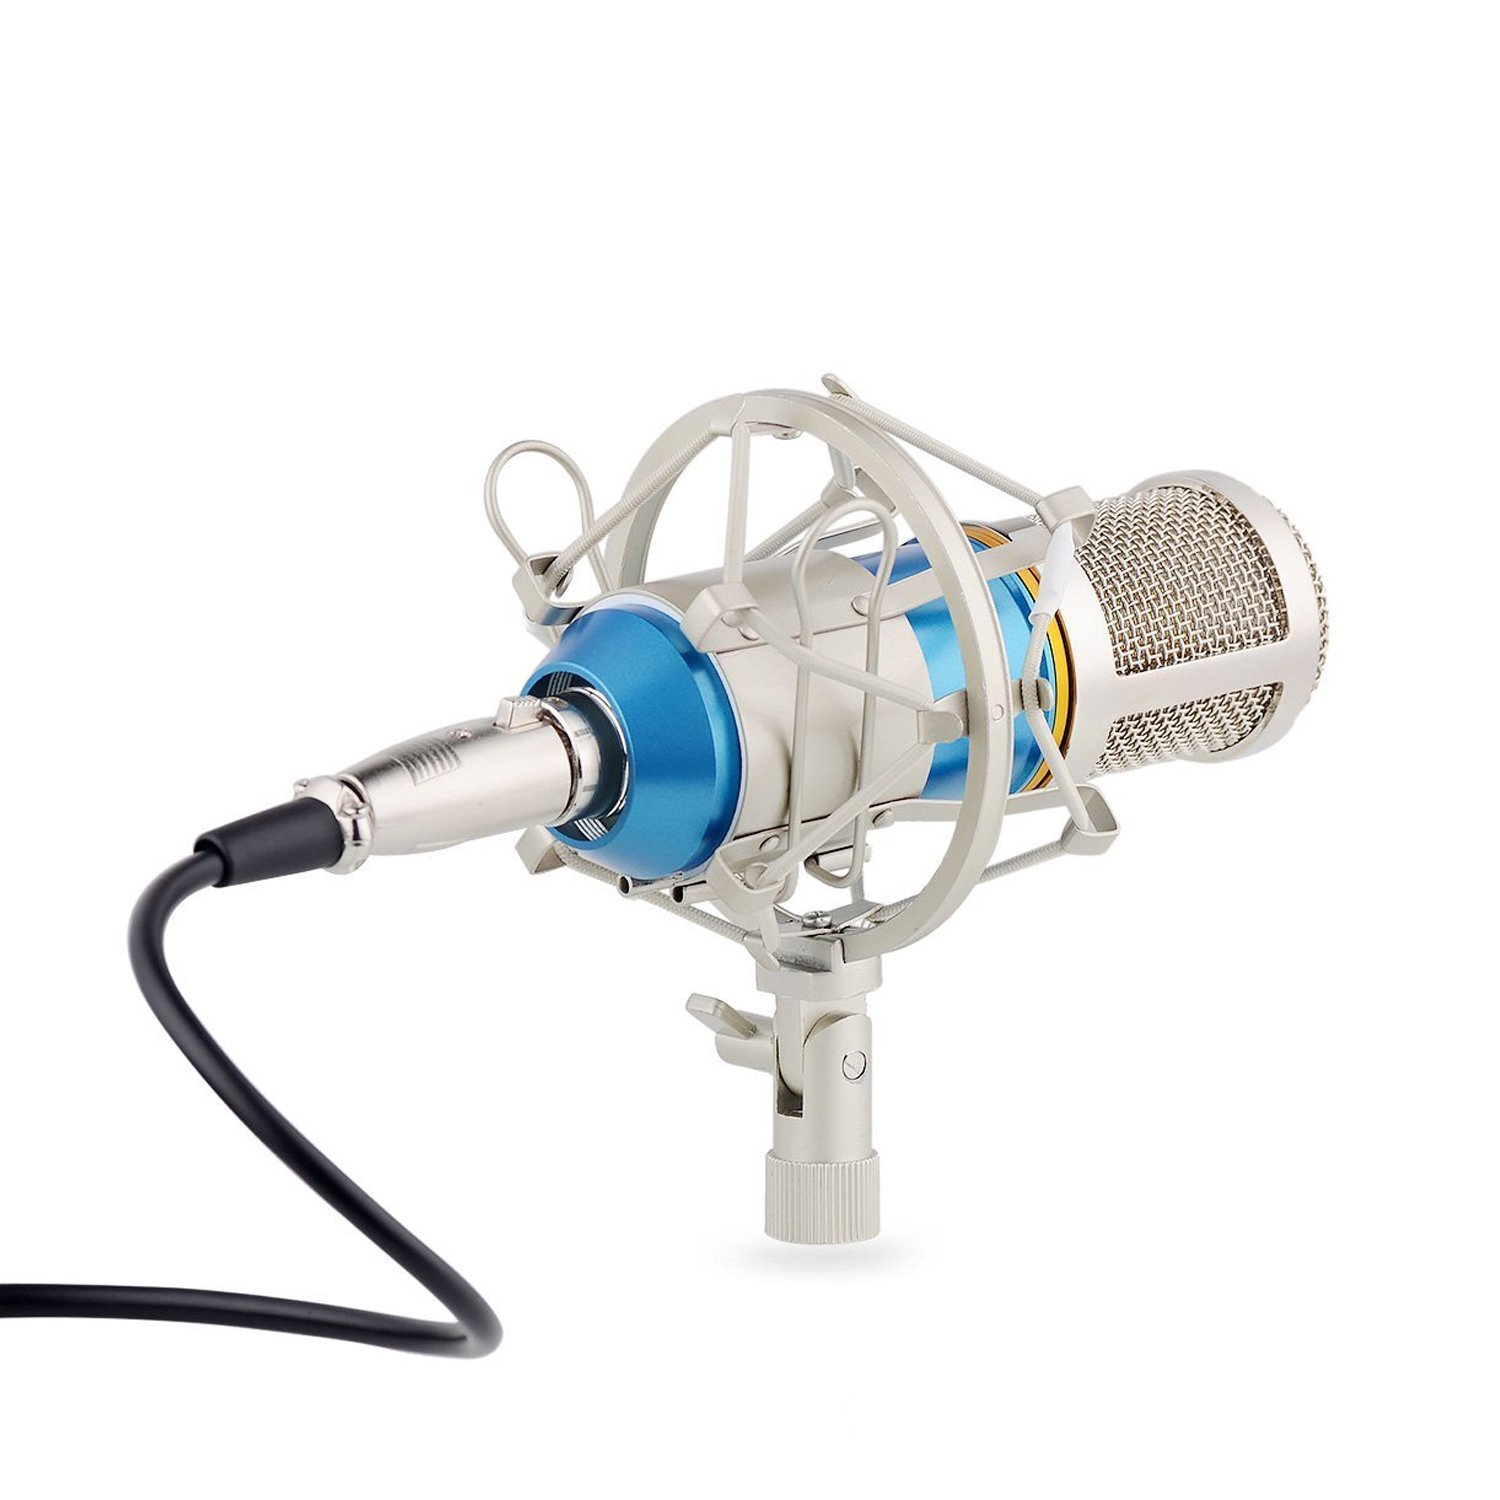 eBerry Condenser Microphone, Large Diaphragm Studio Broadcasting & Recording Vocal Condenser Mic with Shock Mount Holder Clip (Blue) by eBerry (Image #3)